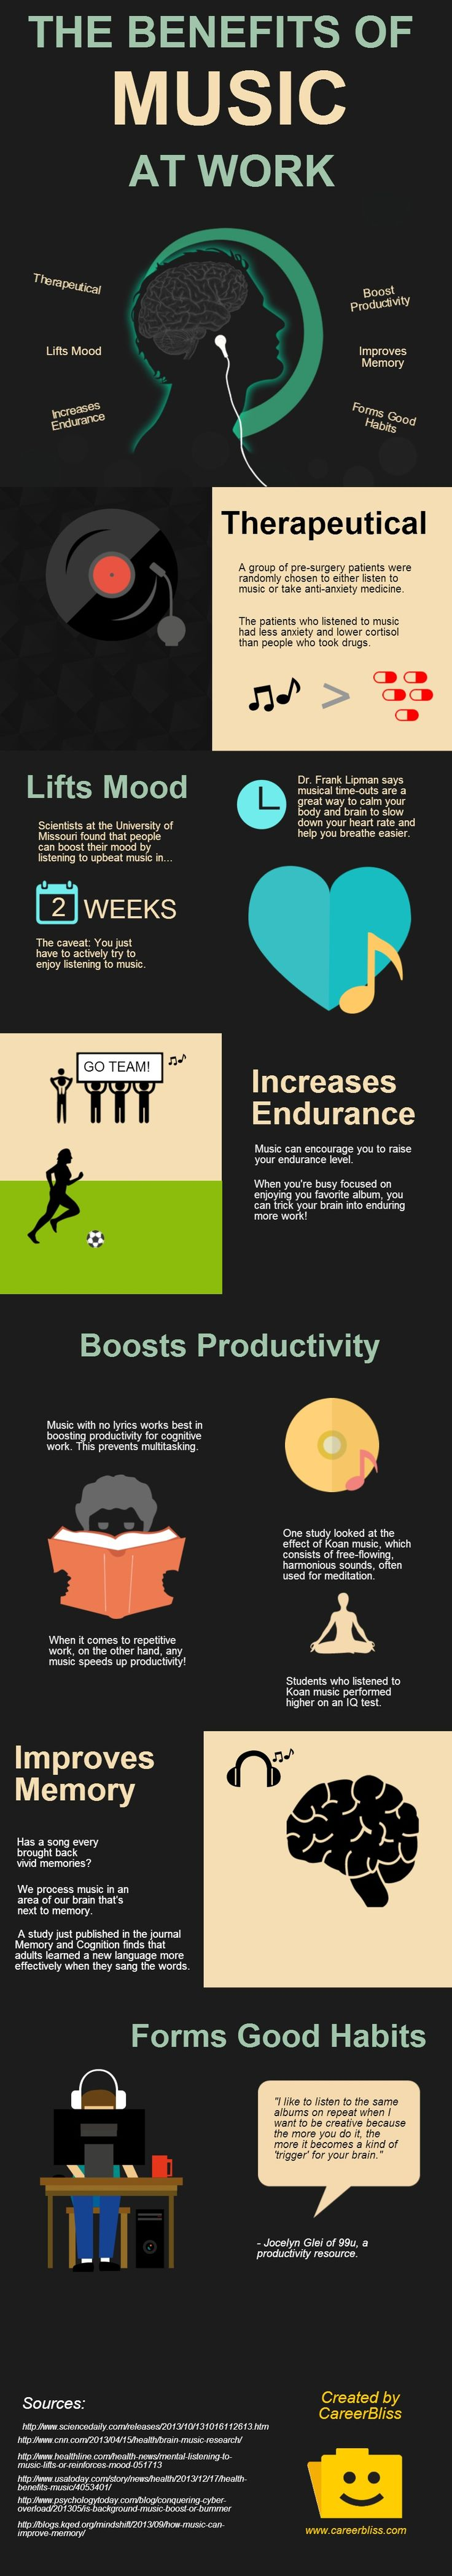 The Benefits of Music at Work [INFOGRAPHIC]